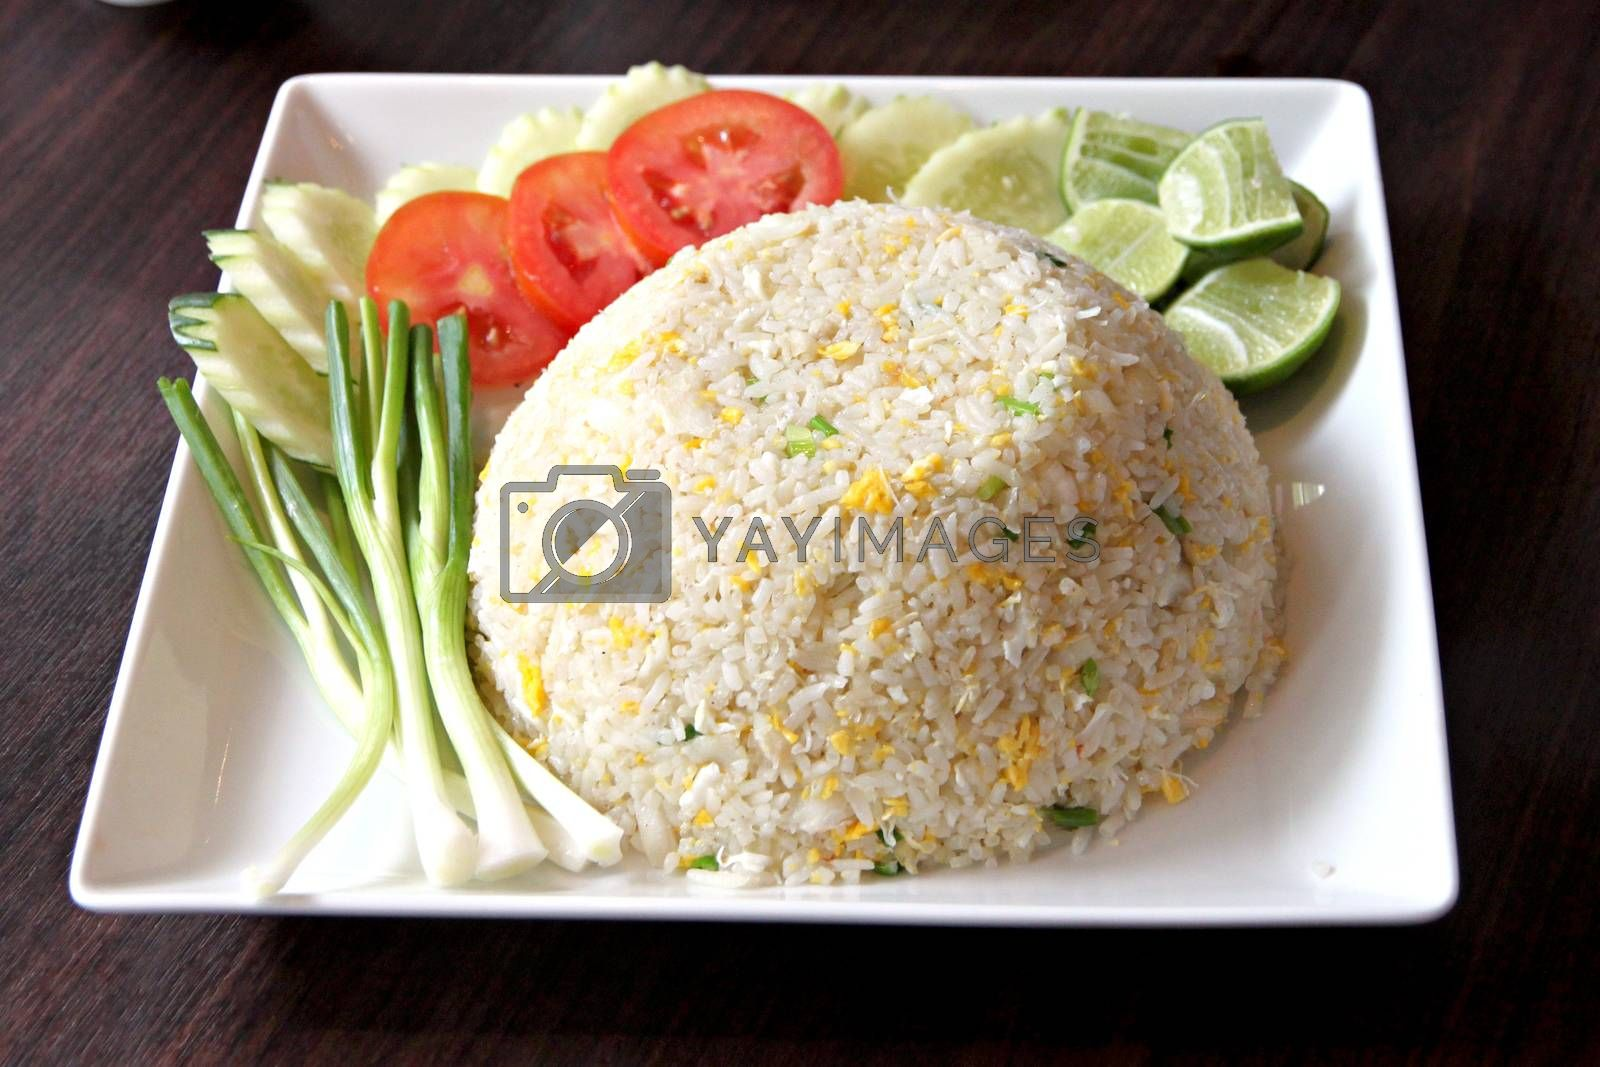 The Picture focus Fried rice in white dish on the Foods table.